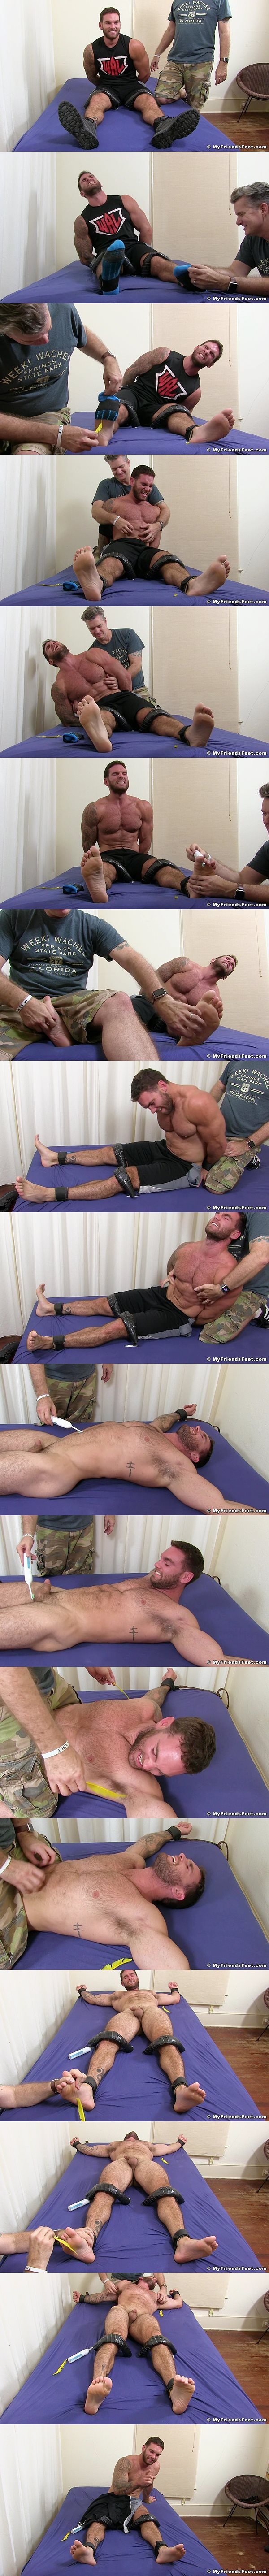 Myfriendsfeet - Chase Lachance Comes Back For Tickle Torture 02